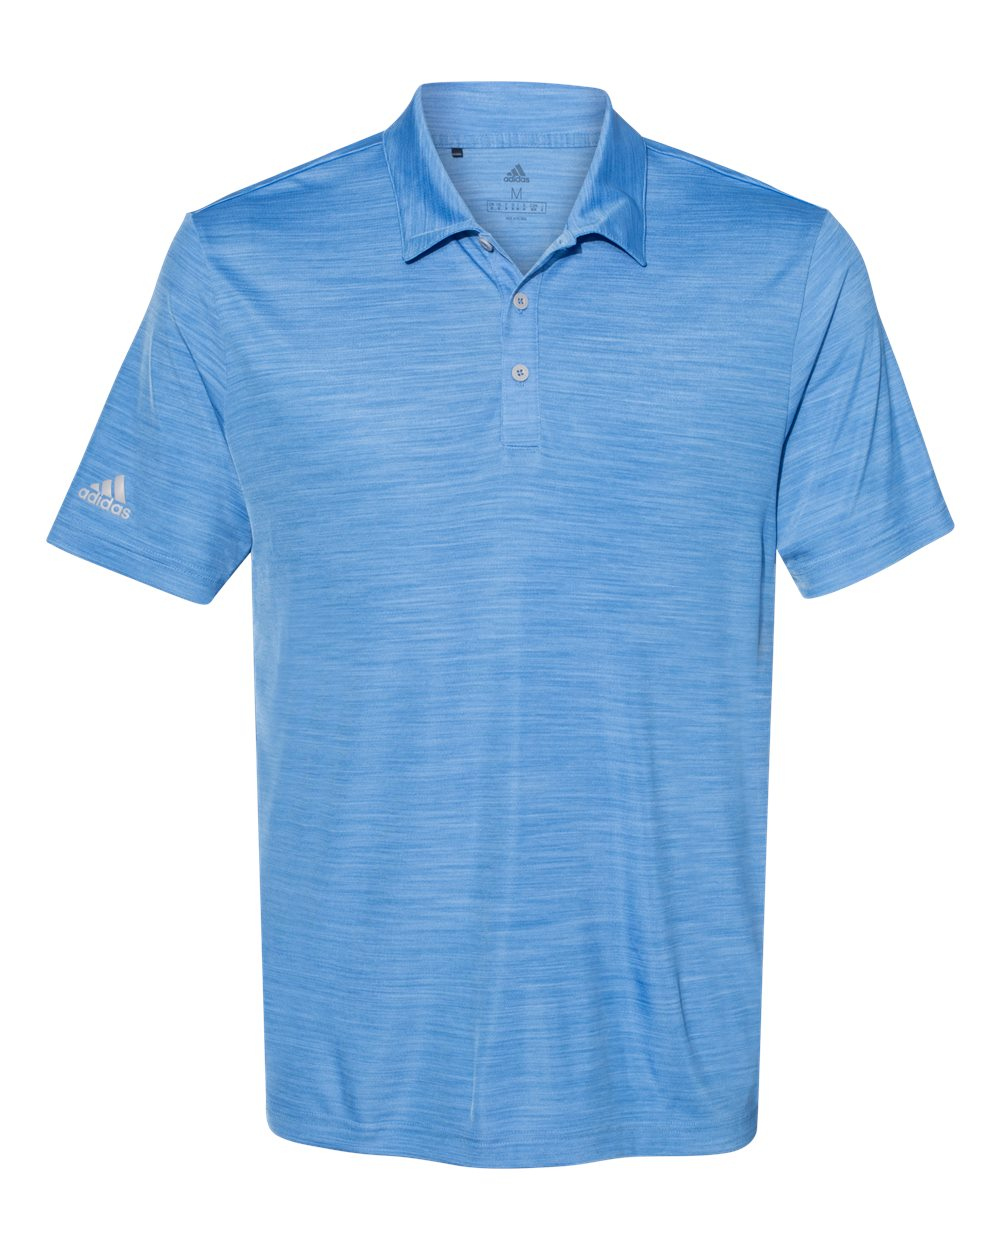 ADIDAS MEN'S MELANGE POLO